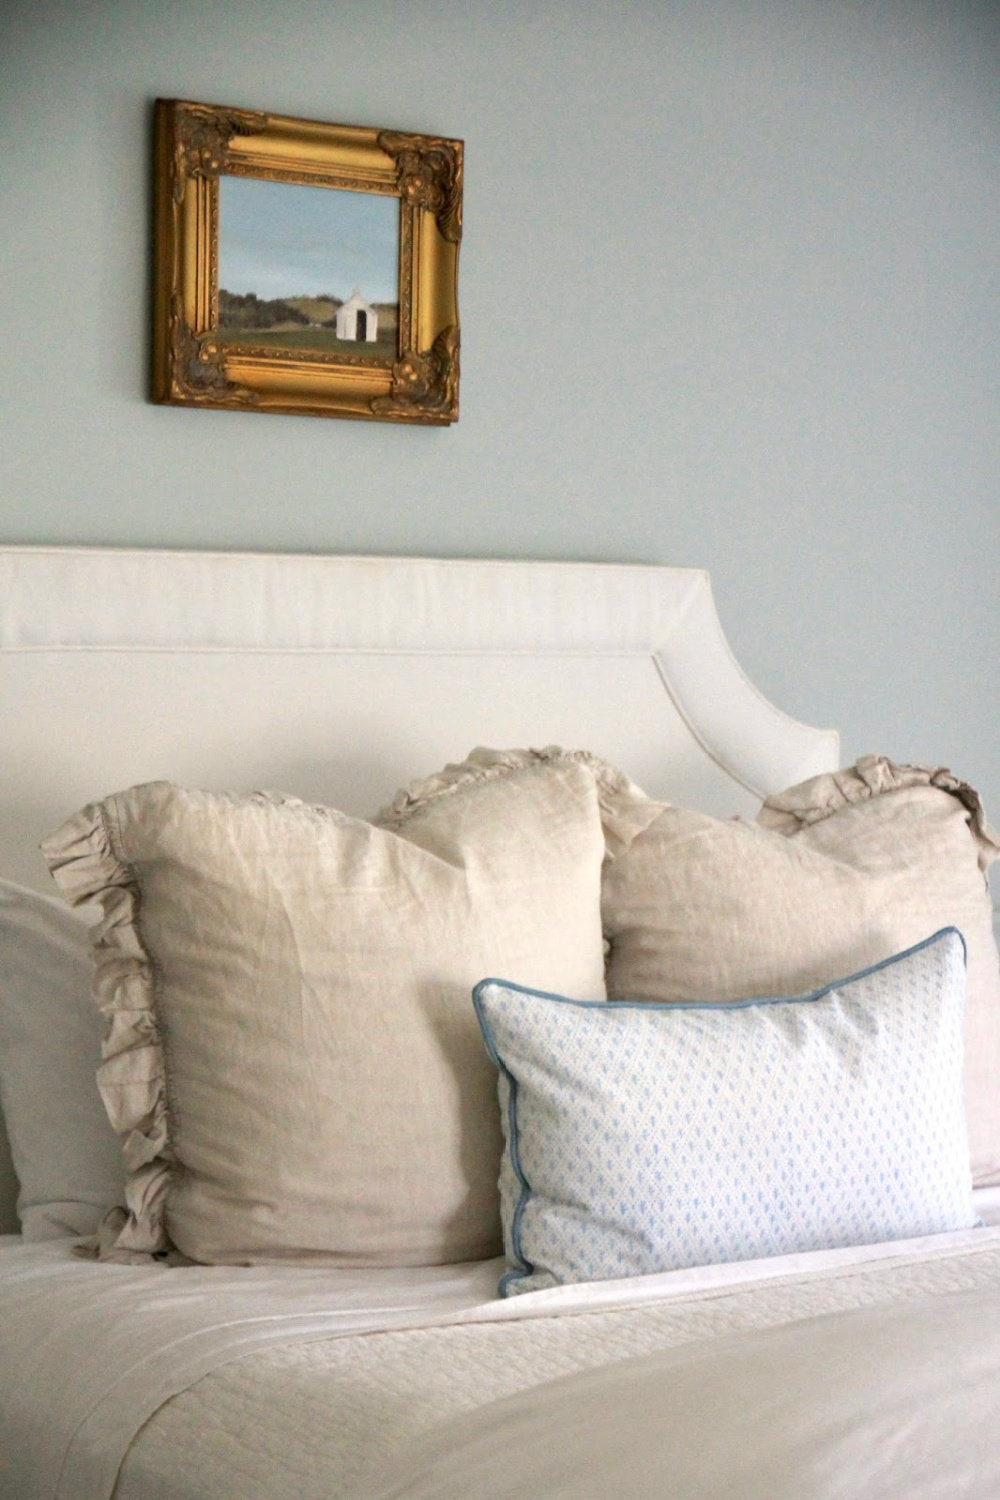 Lovely serene pale blue grey bedroom painted Quiet Moments (Benjamin Moore) - JSH Home. #quietmoments #benjaminmoorequietmoments #bluegrey #paintcolors